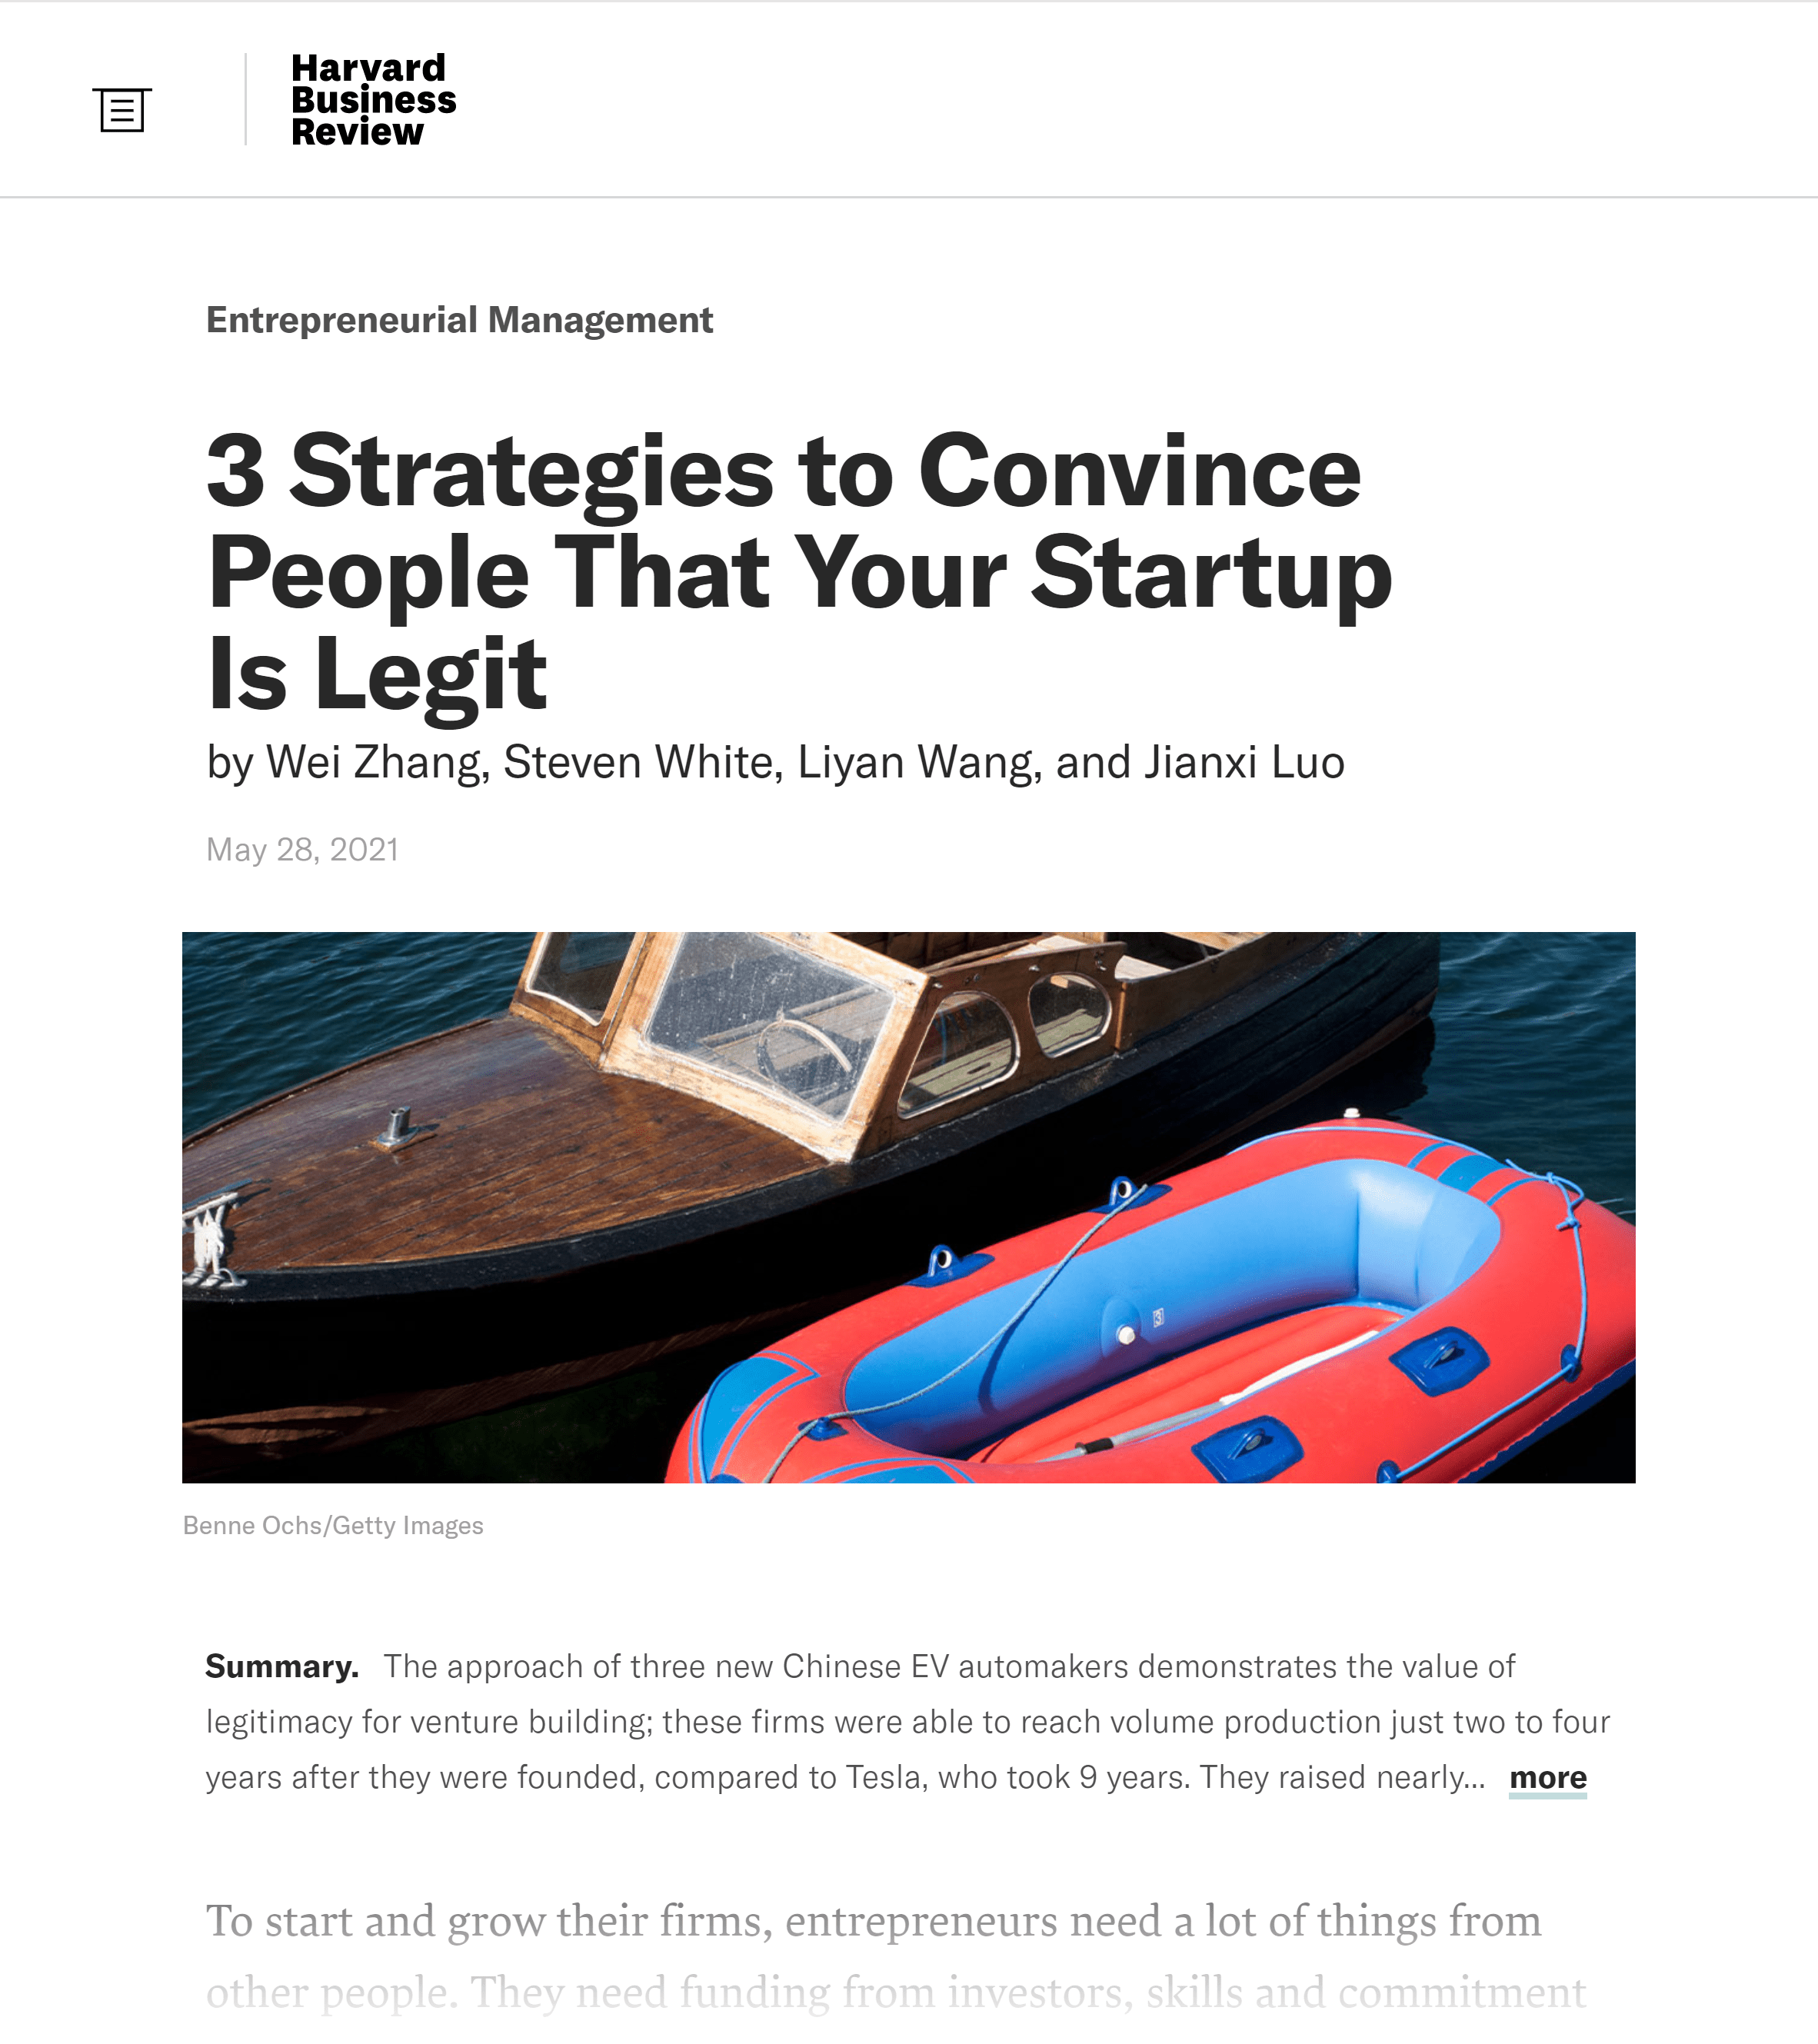 HBR – Strategies to convince people